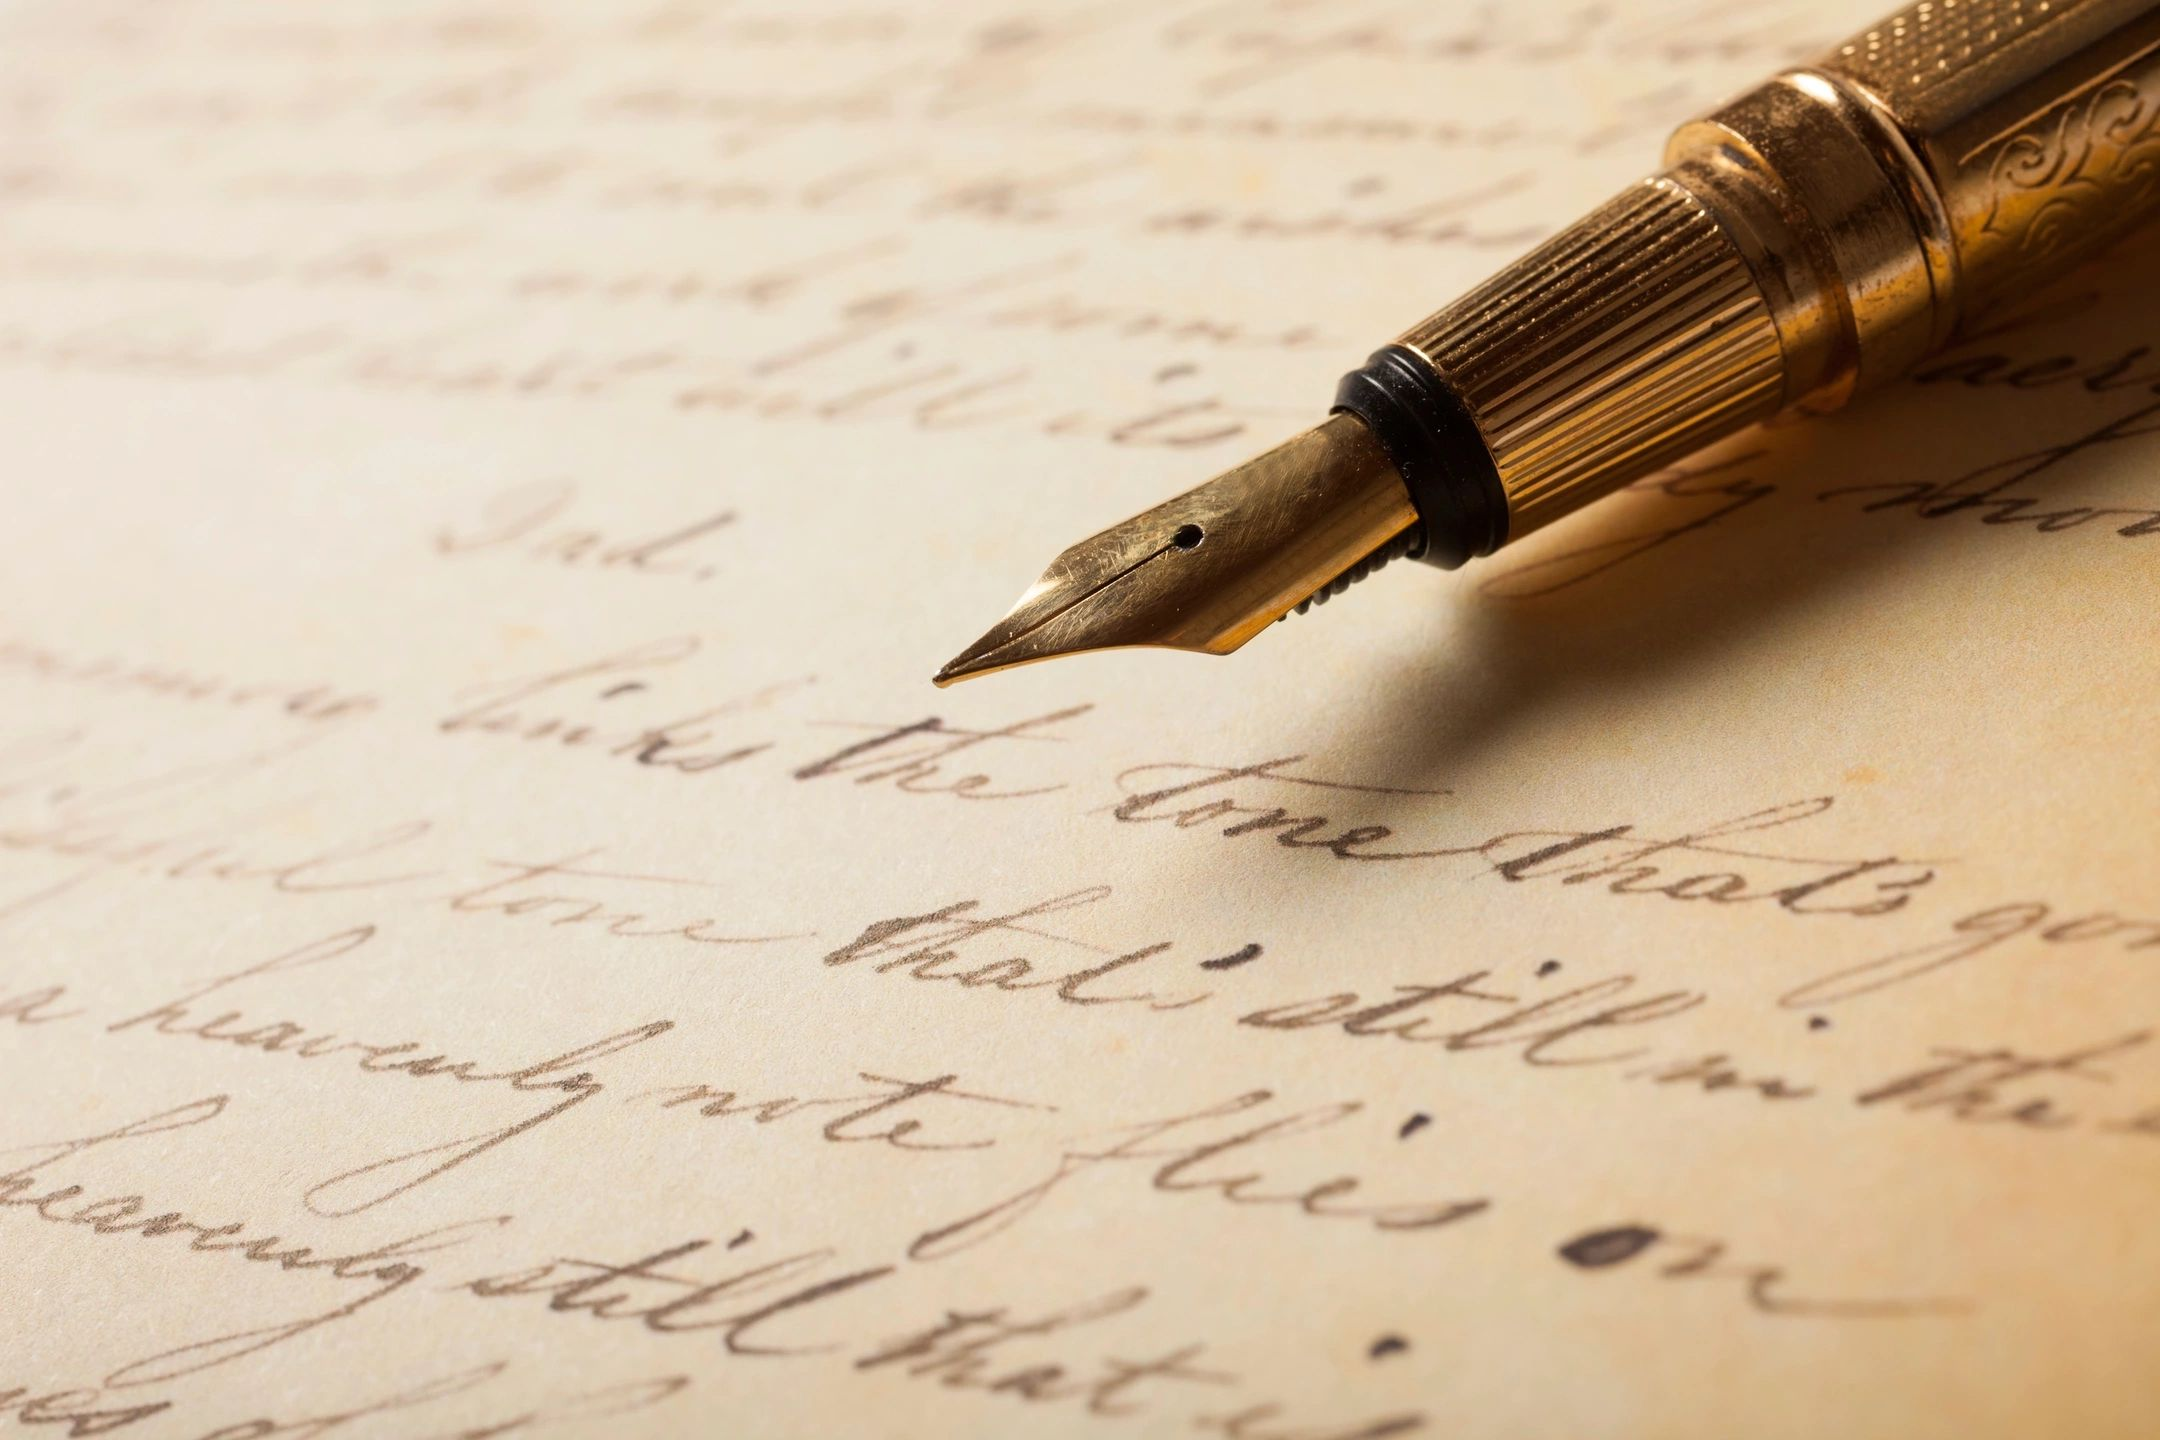 How long have I been writing?